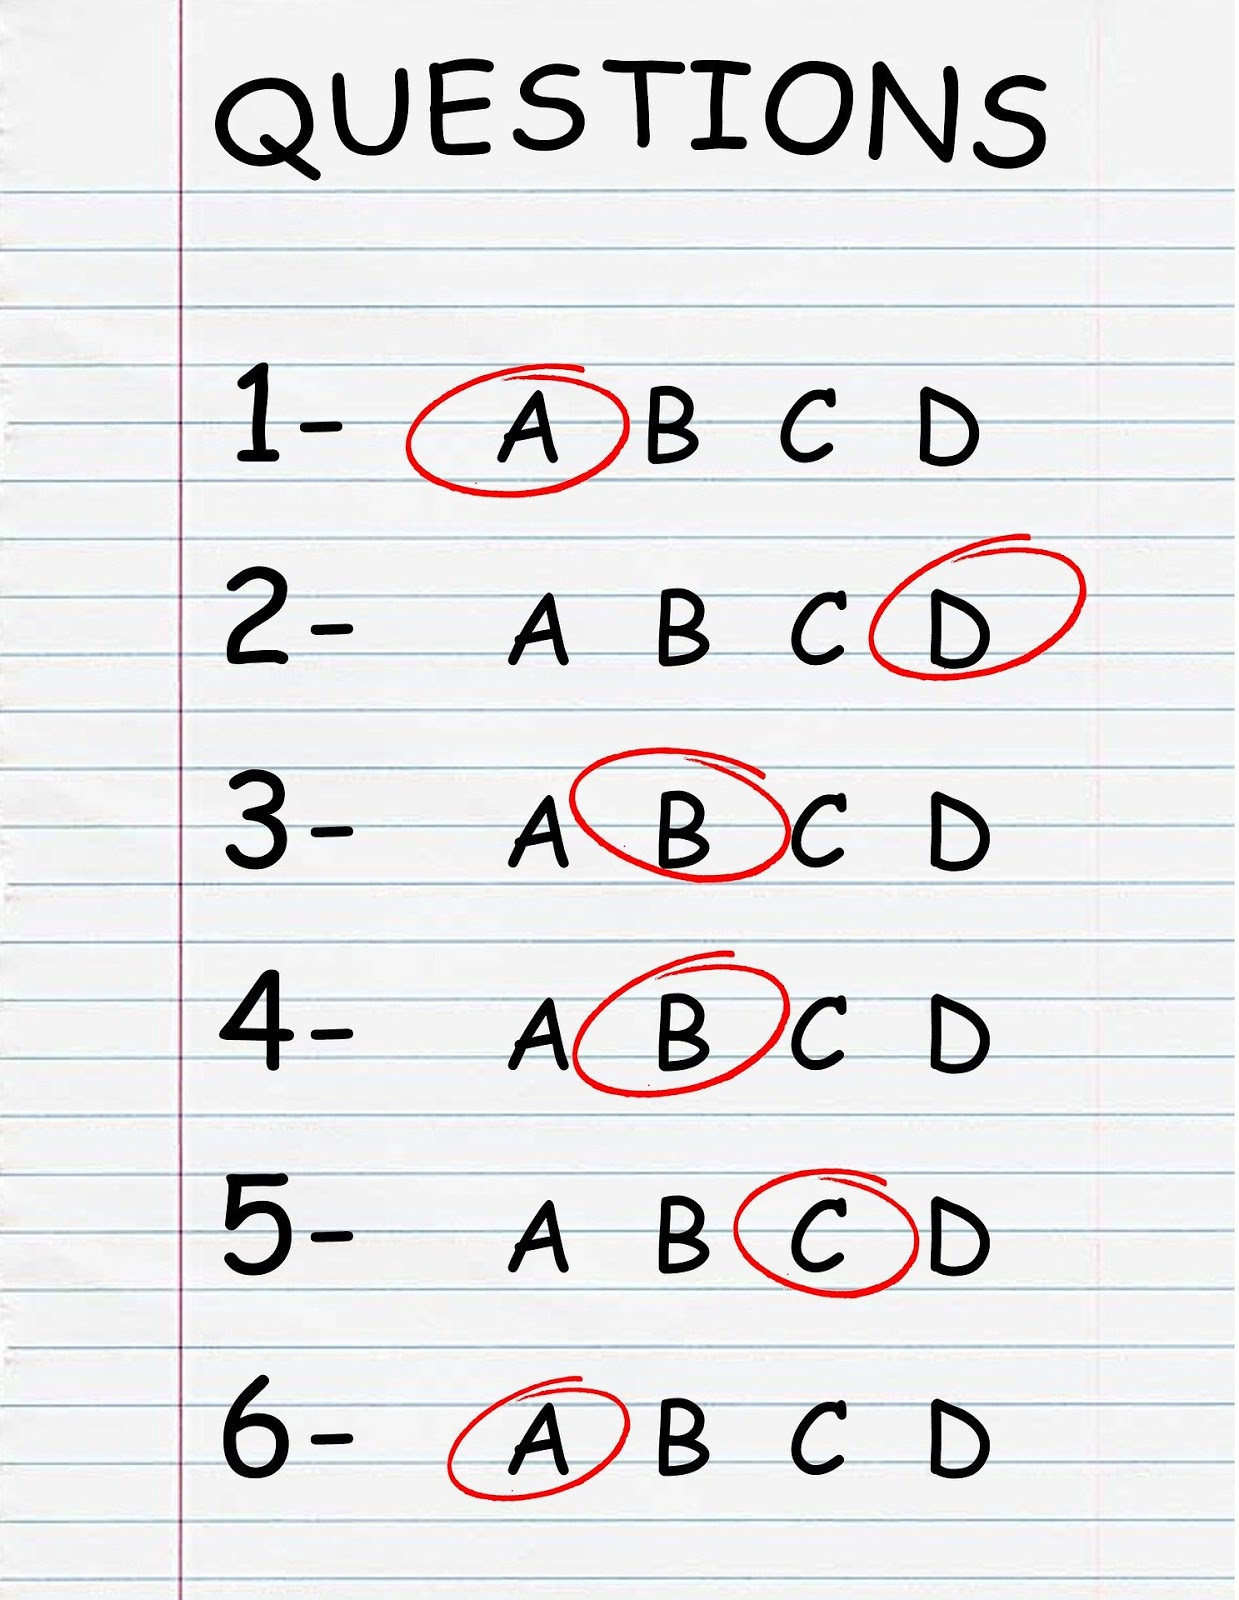 a simple looking multiple choice test